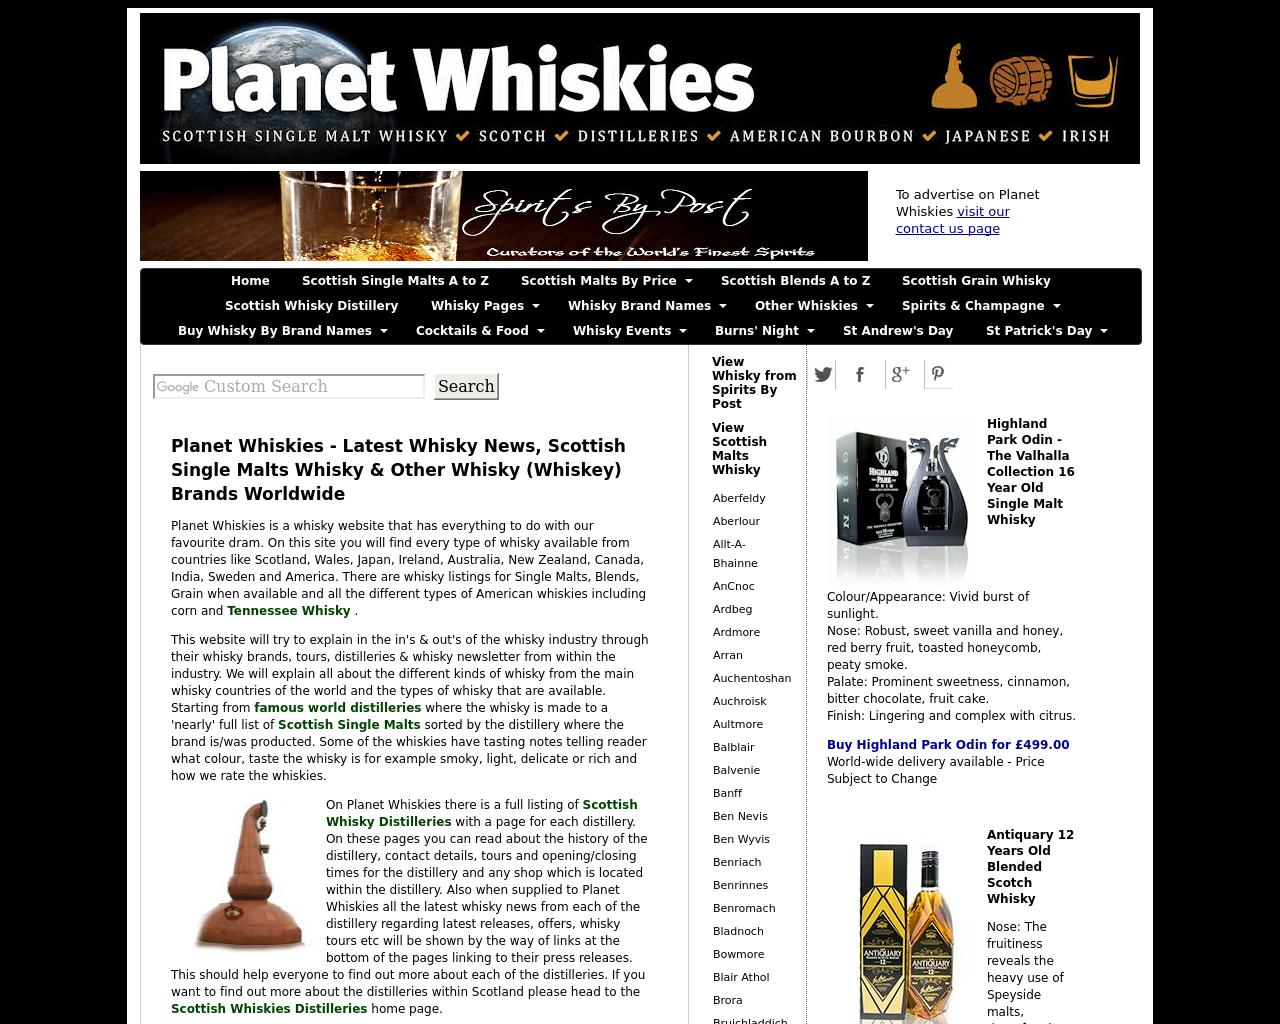 Planet-Whiskies-Advertising-Reviews-Pricing